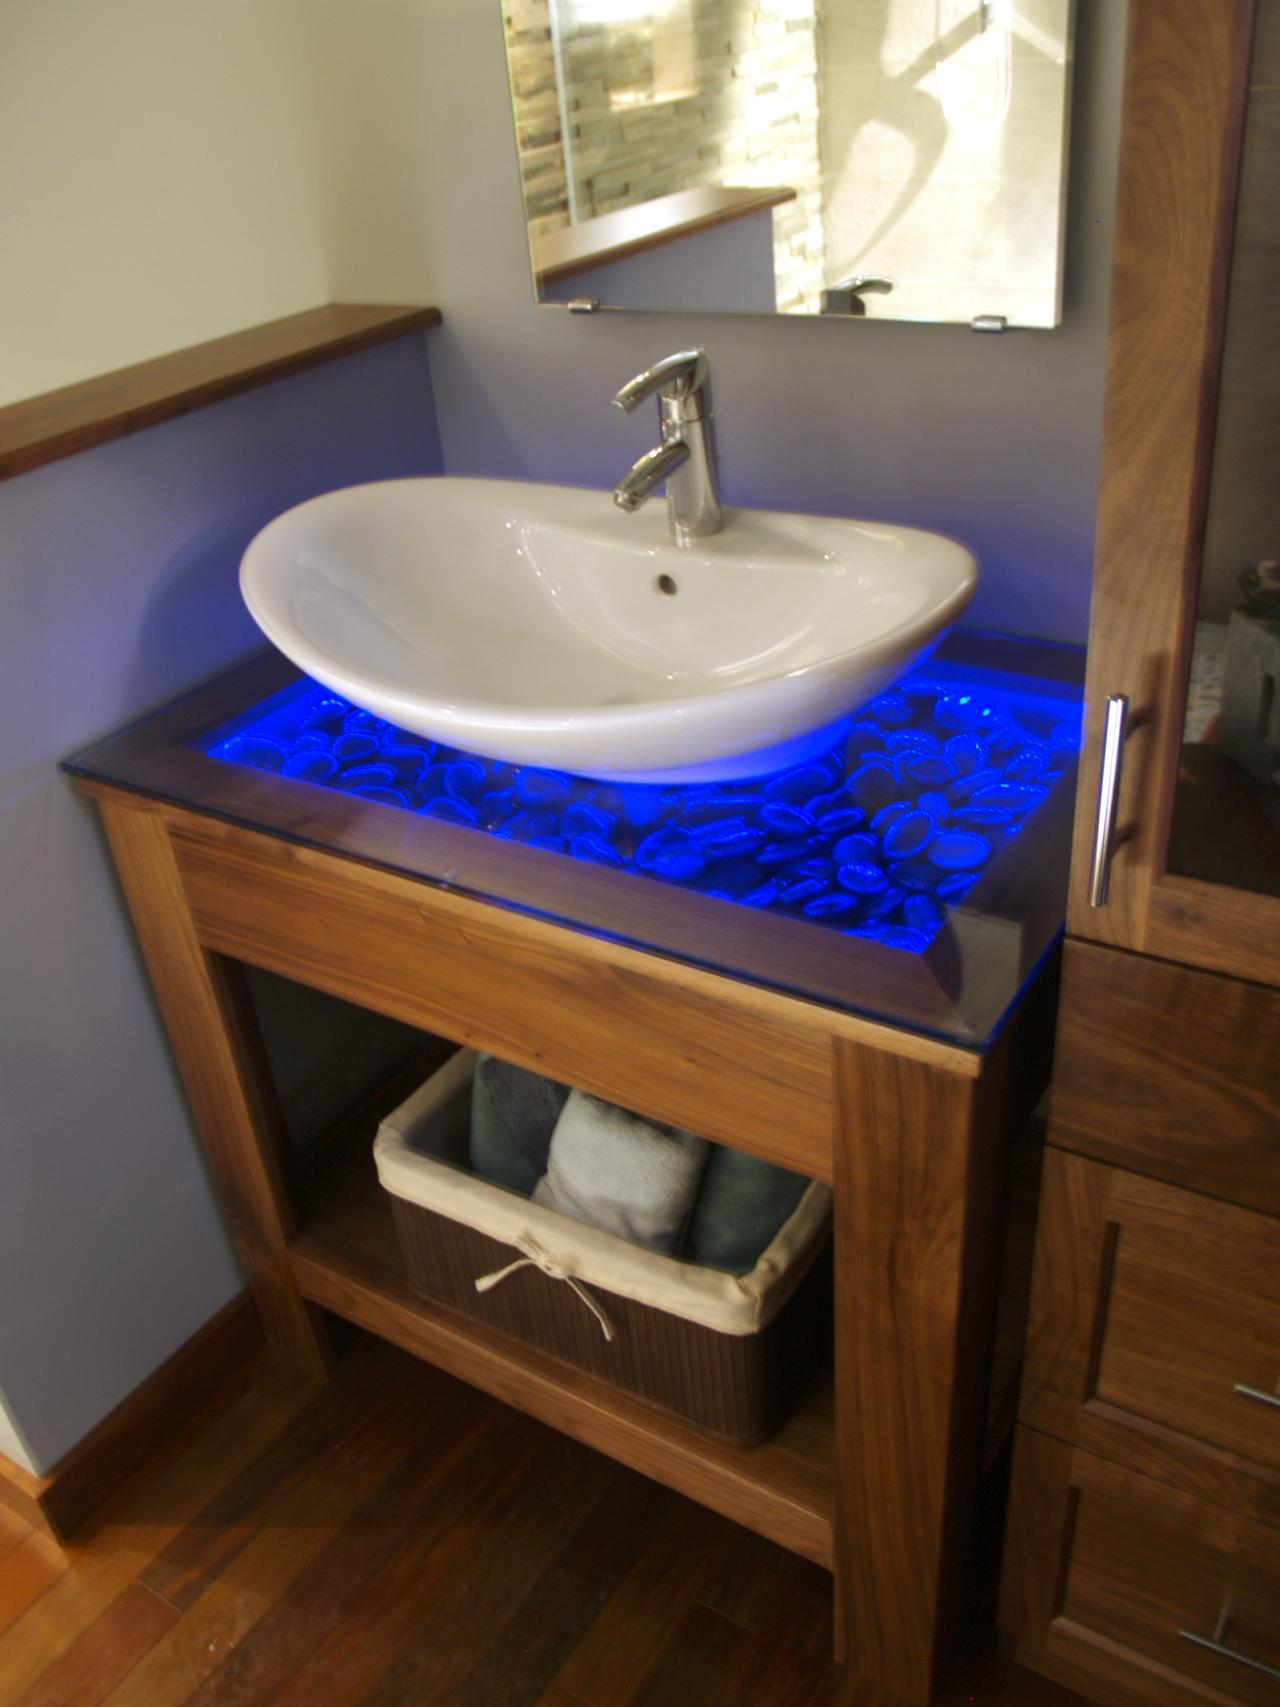 Diy Bathroom Vanity Save Money By Making Your Own Seek Diy